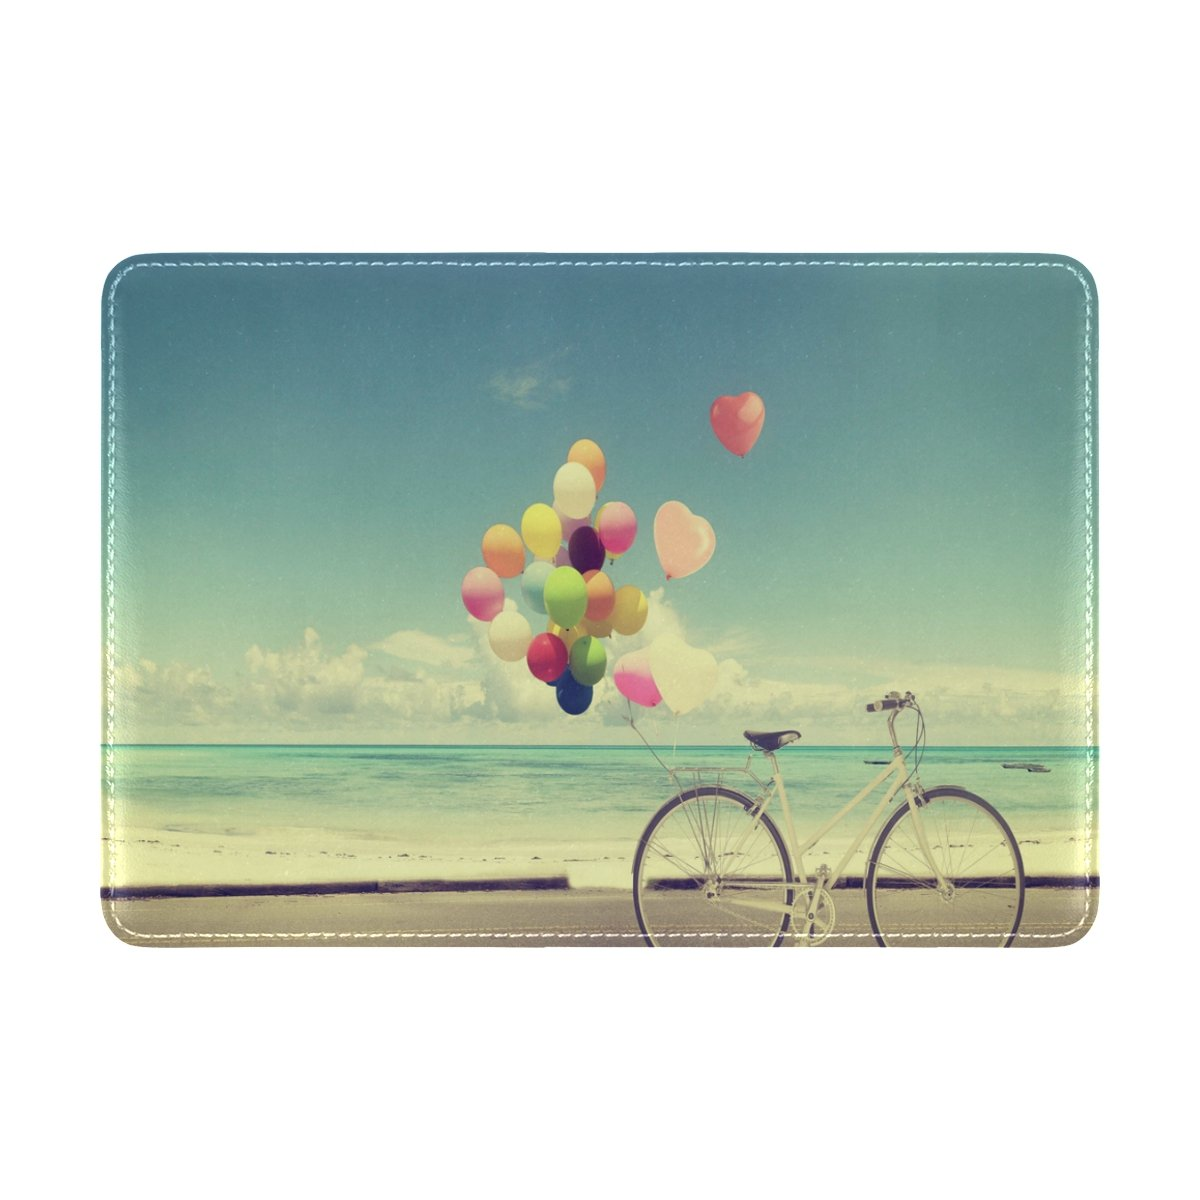 ALAZA Vintage Balloon Bicycle Beach Leather Passport Holder Cover Case Travel One Pocket